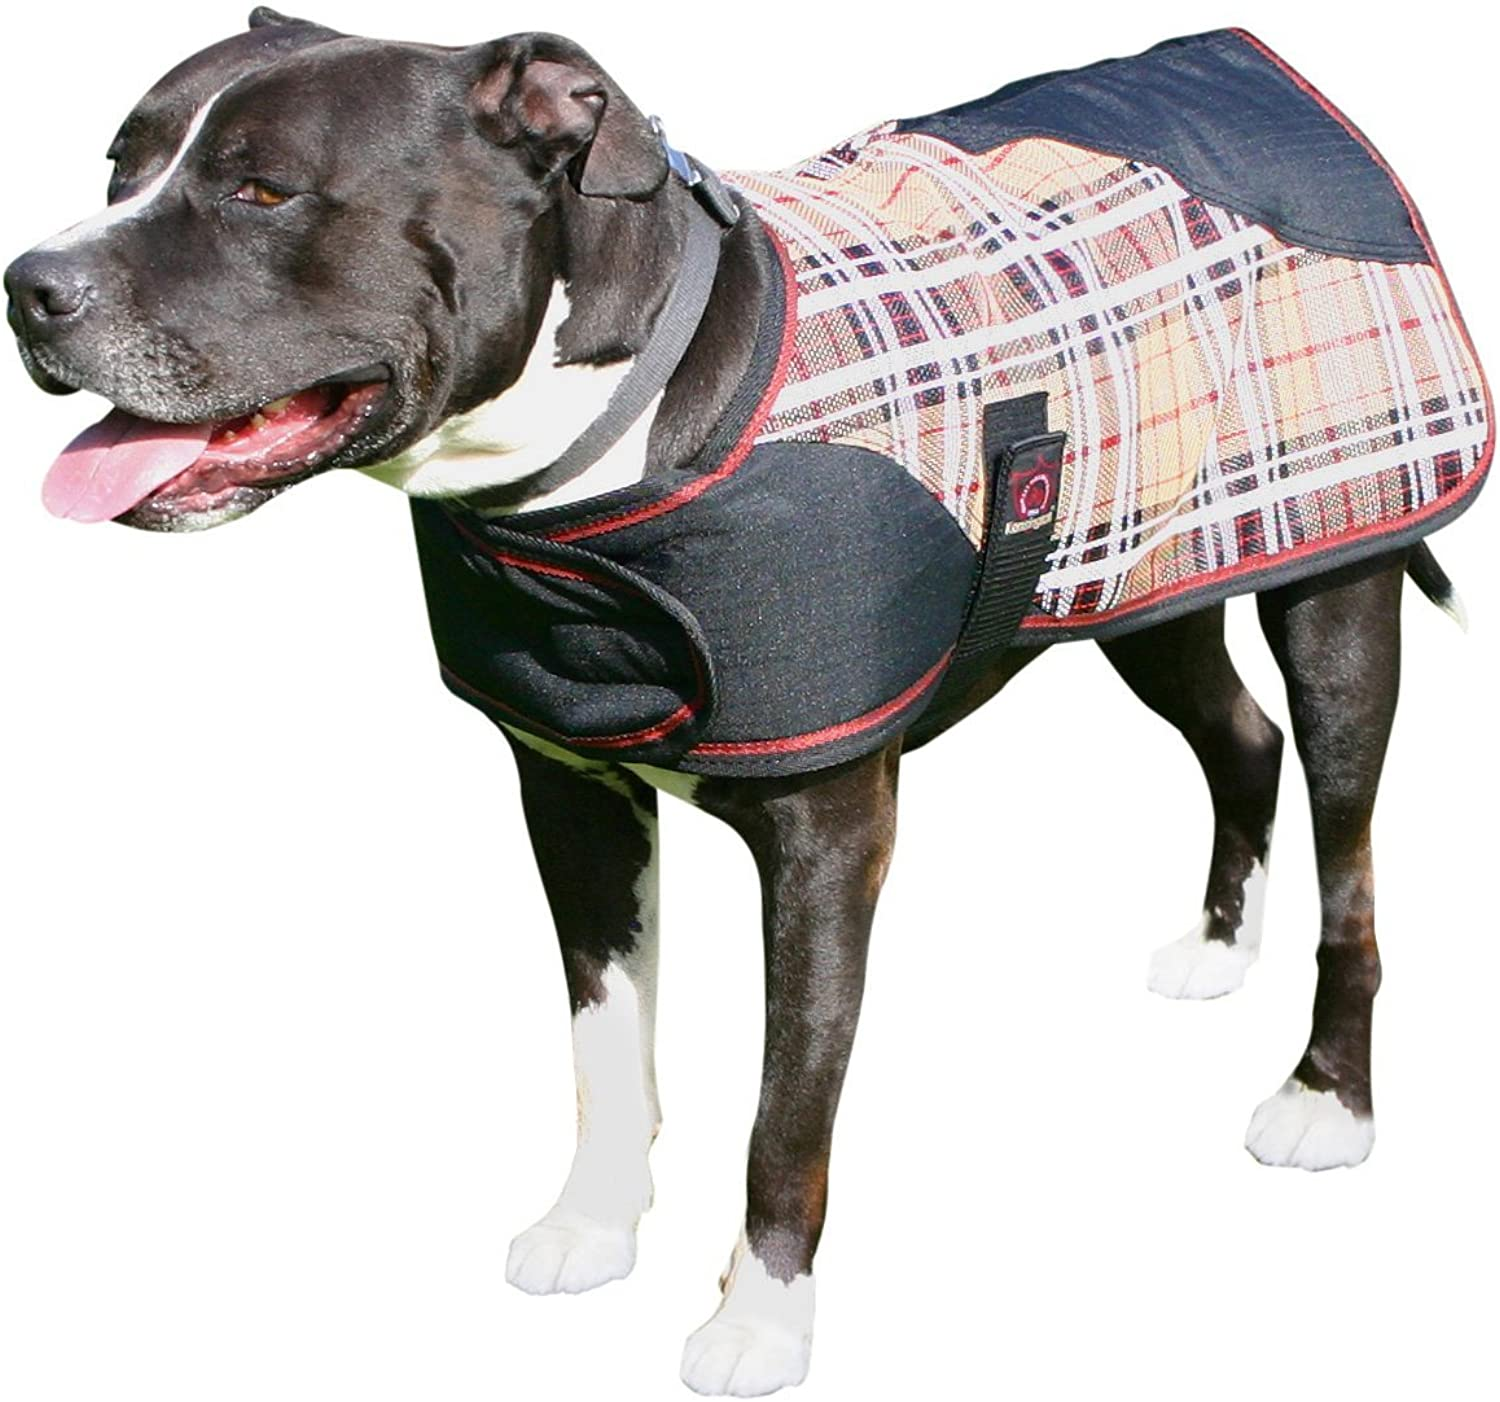 Kensington KD533LTXXXL121 Dog Coat, 3XLarge